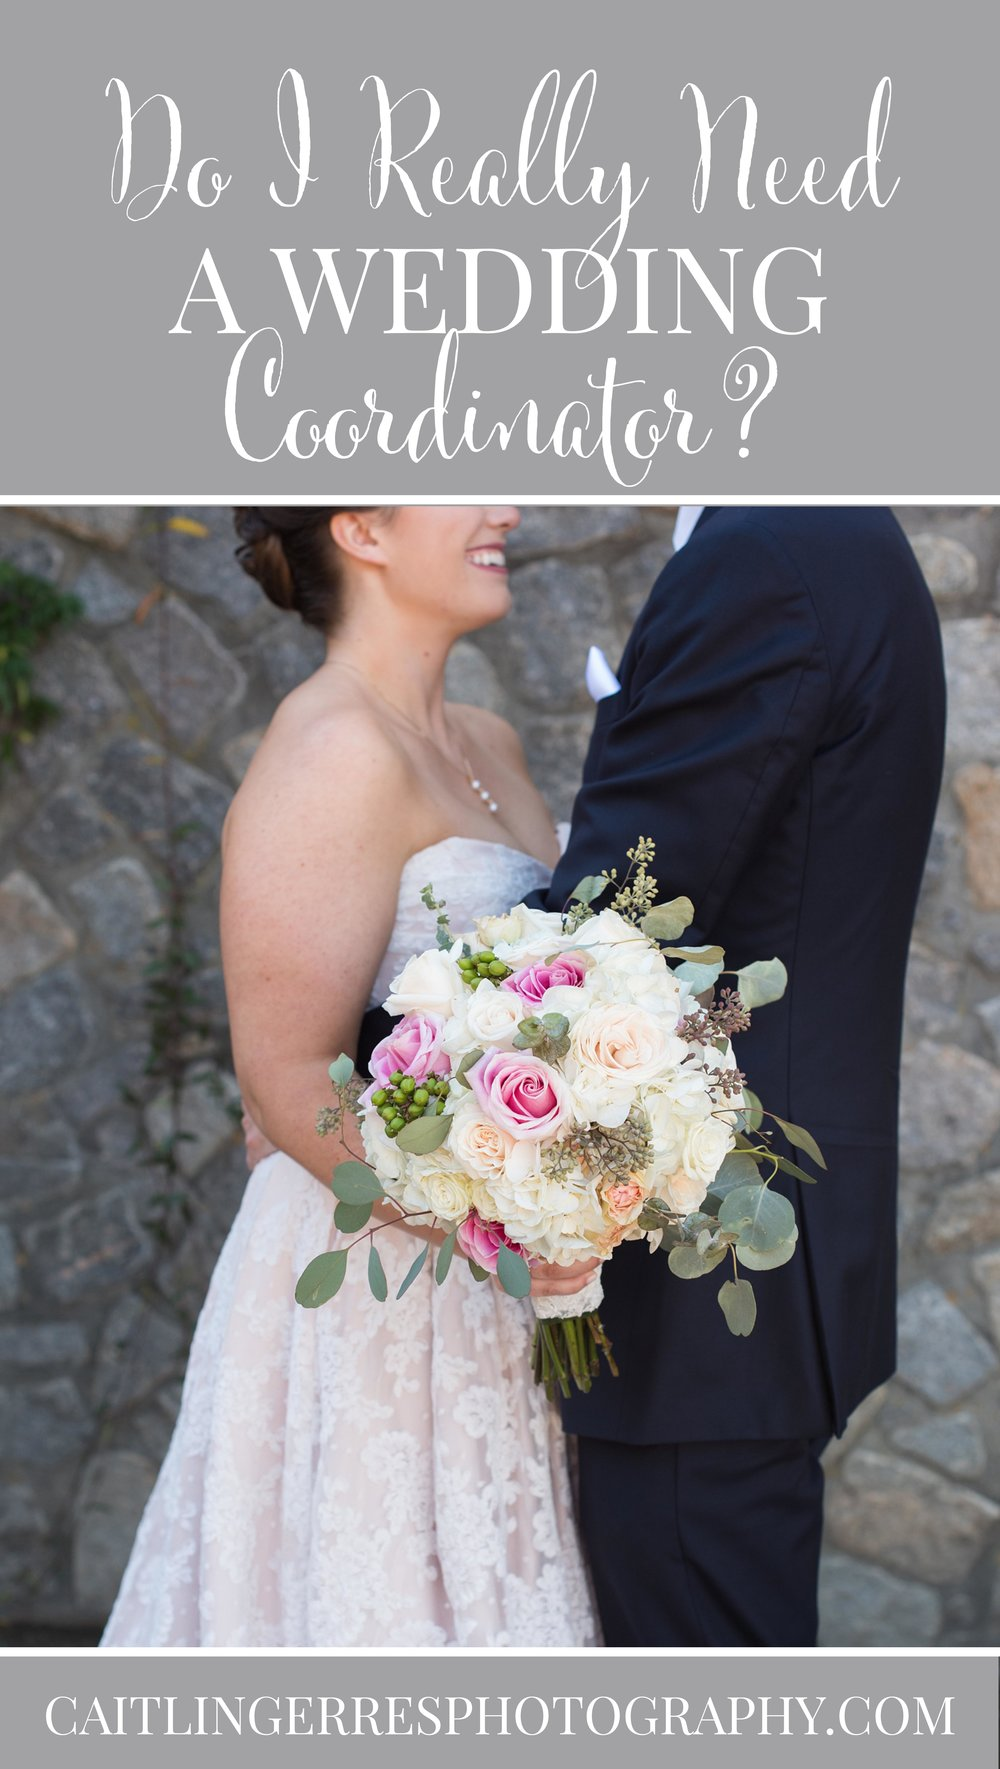 Caitlin Gerres Photography Do I Really Need a Wedding Coordinator